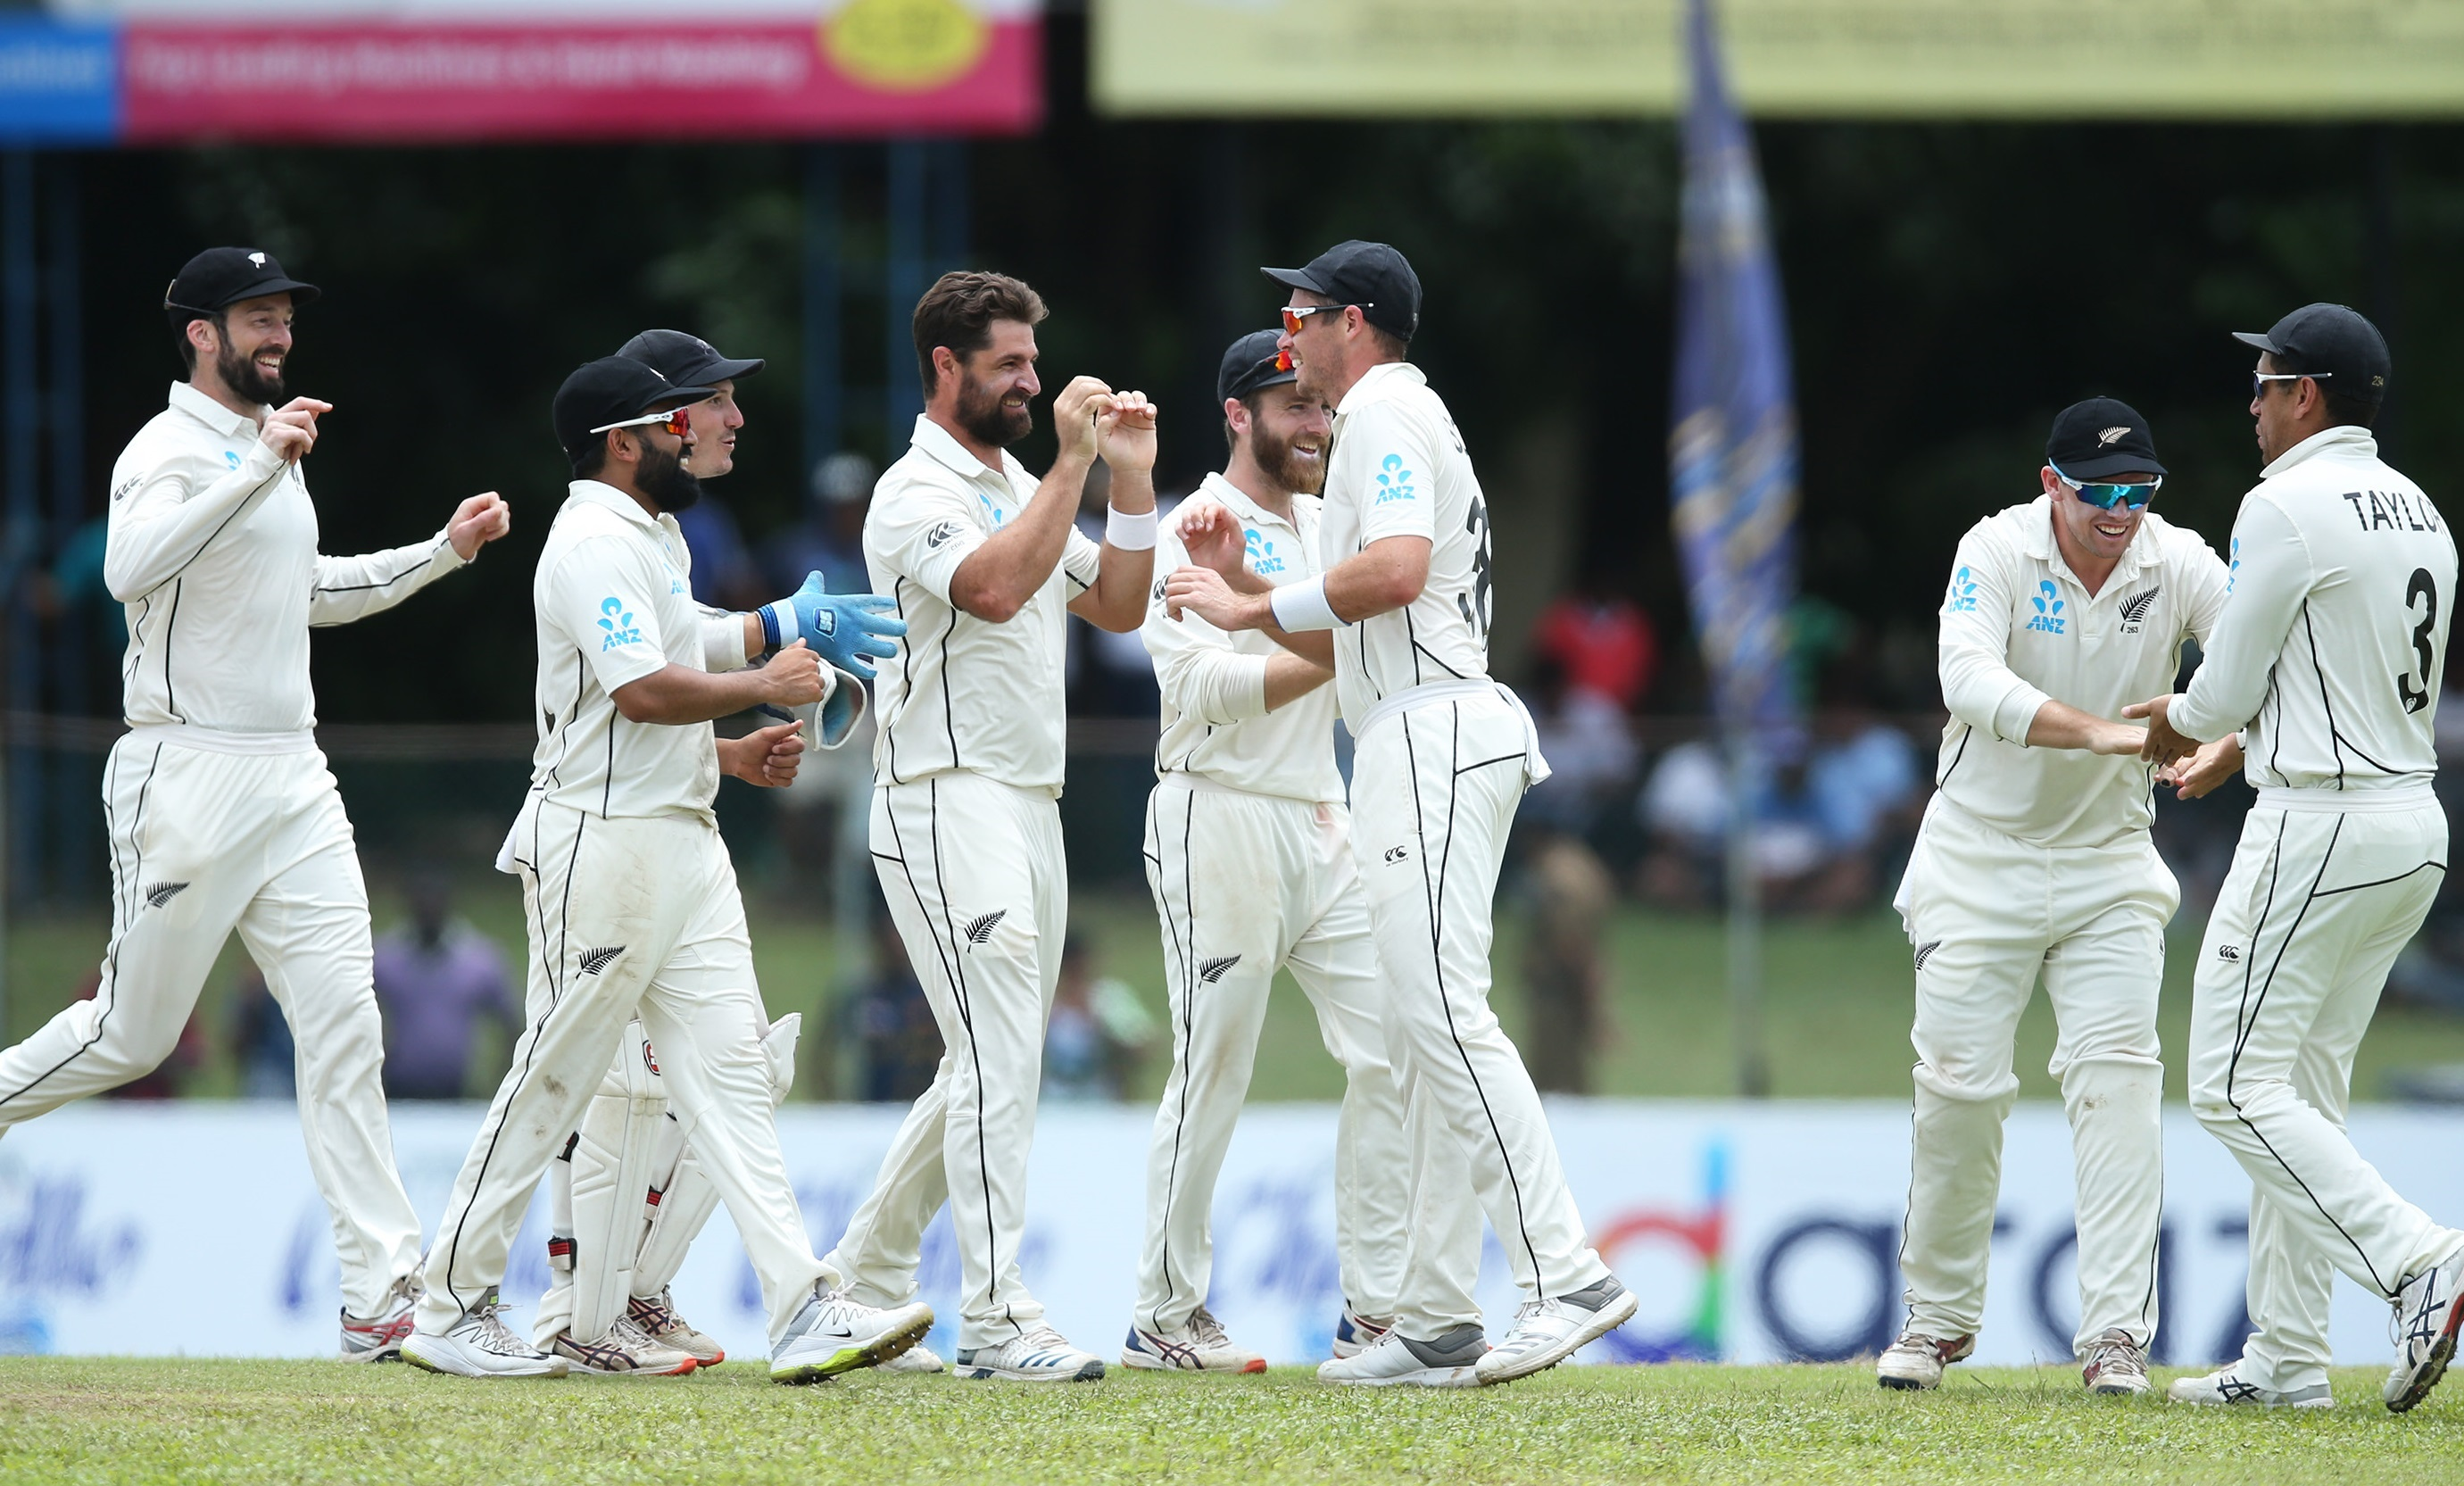 Bowlers star in New Zealand's remarkable last day win, series drawn at 1-1